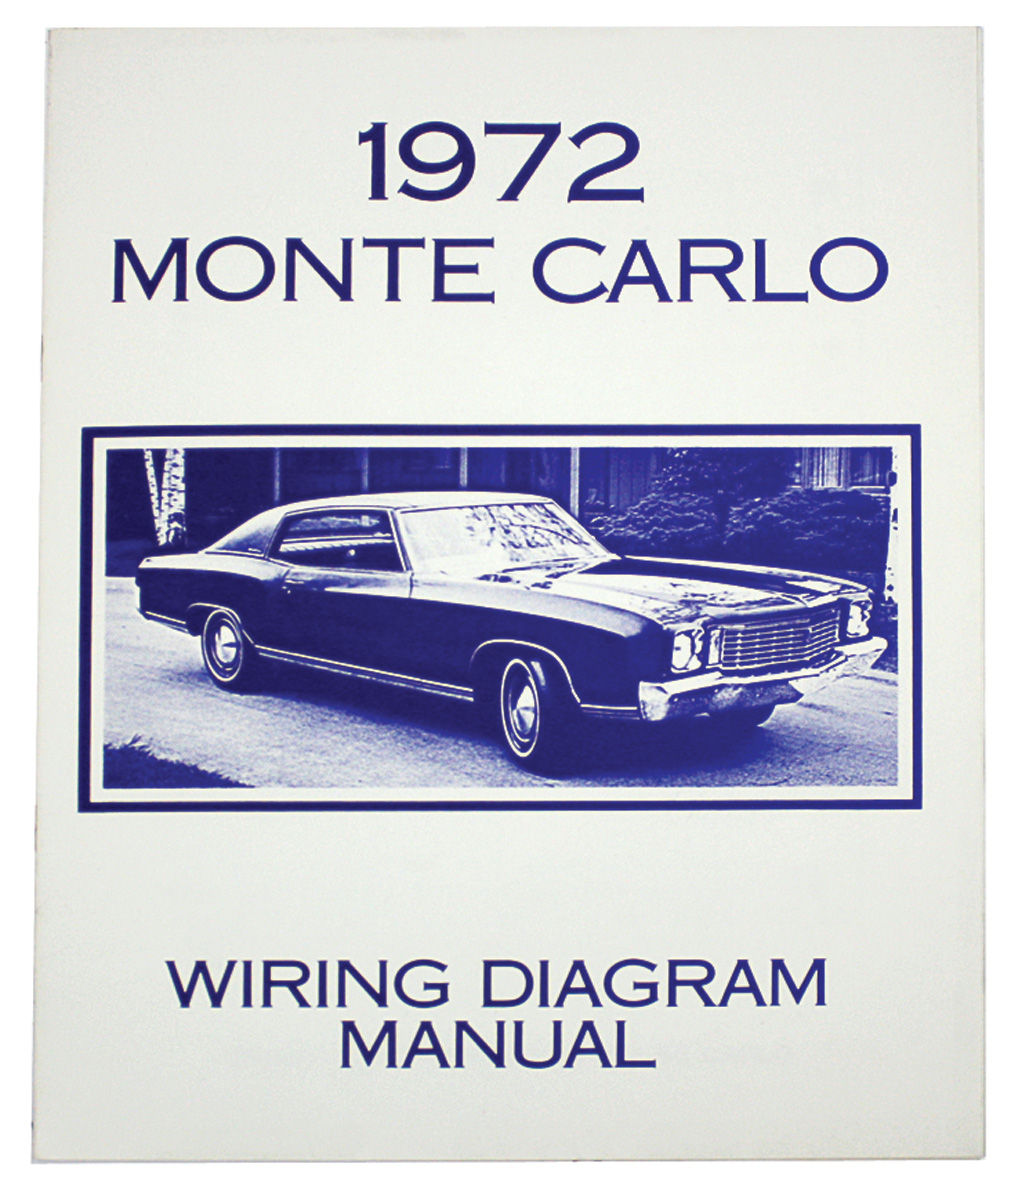 1971 monte carlo wiring diagram manuals opgi com